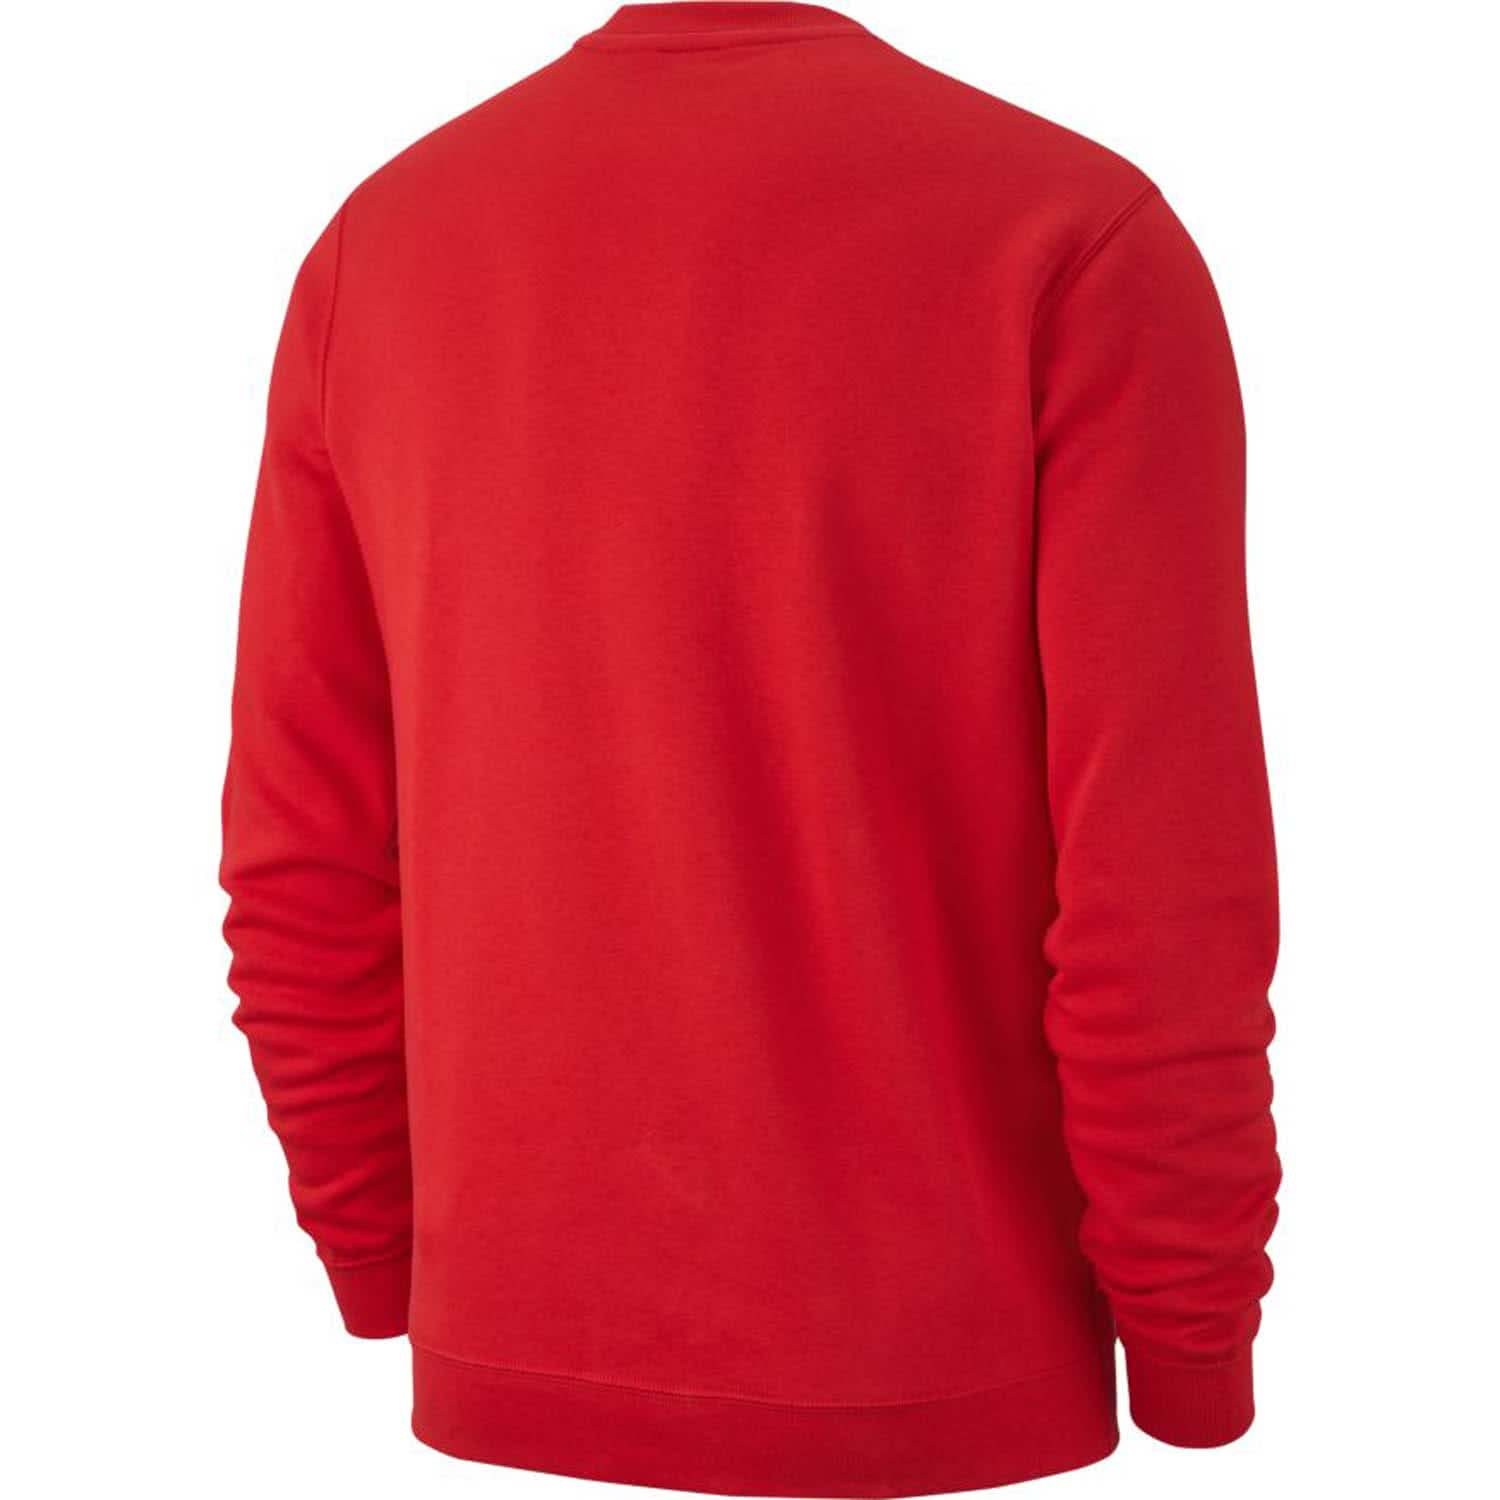 NIKE Жакет мужской CREW FLEECE TEAM CLUB, red. Фото N2